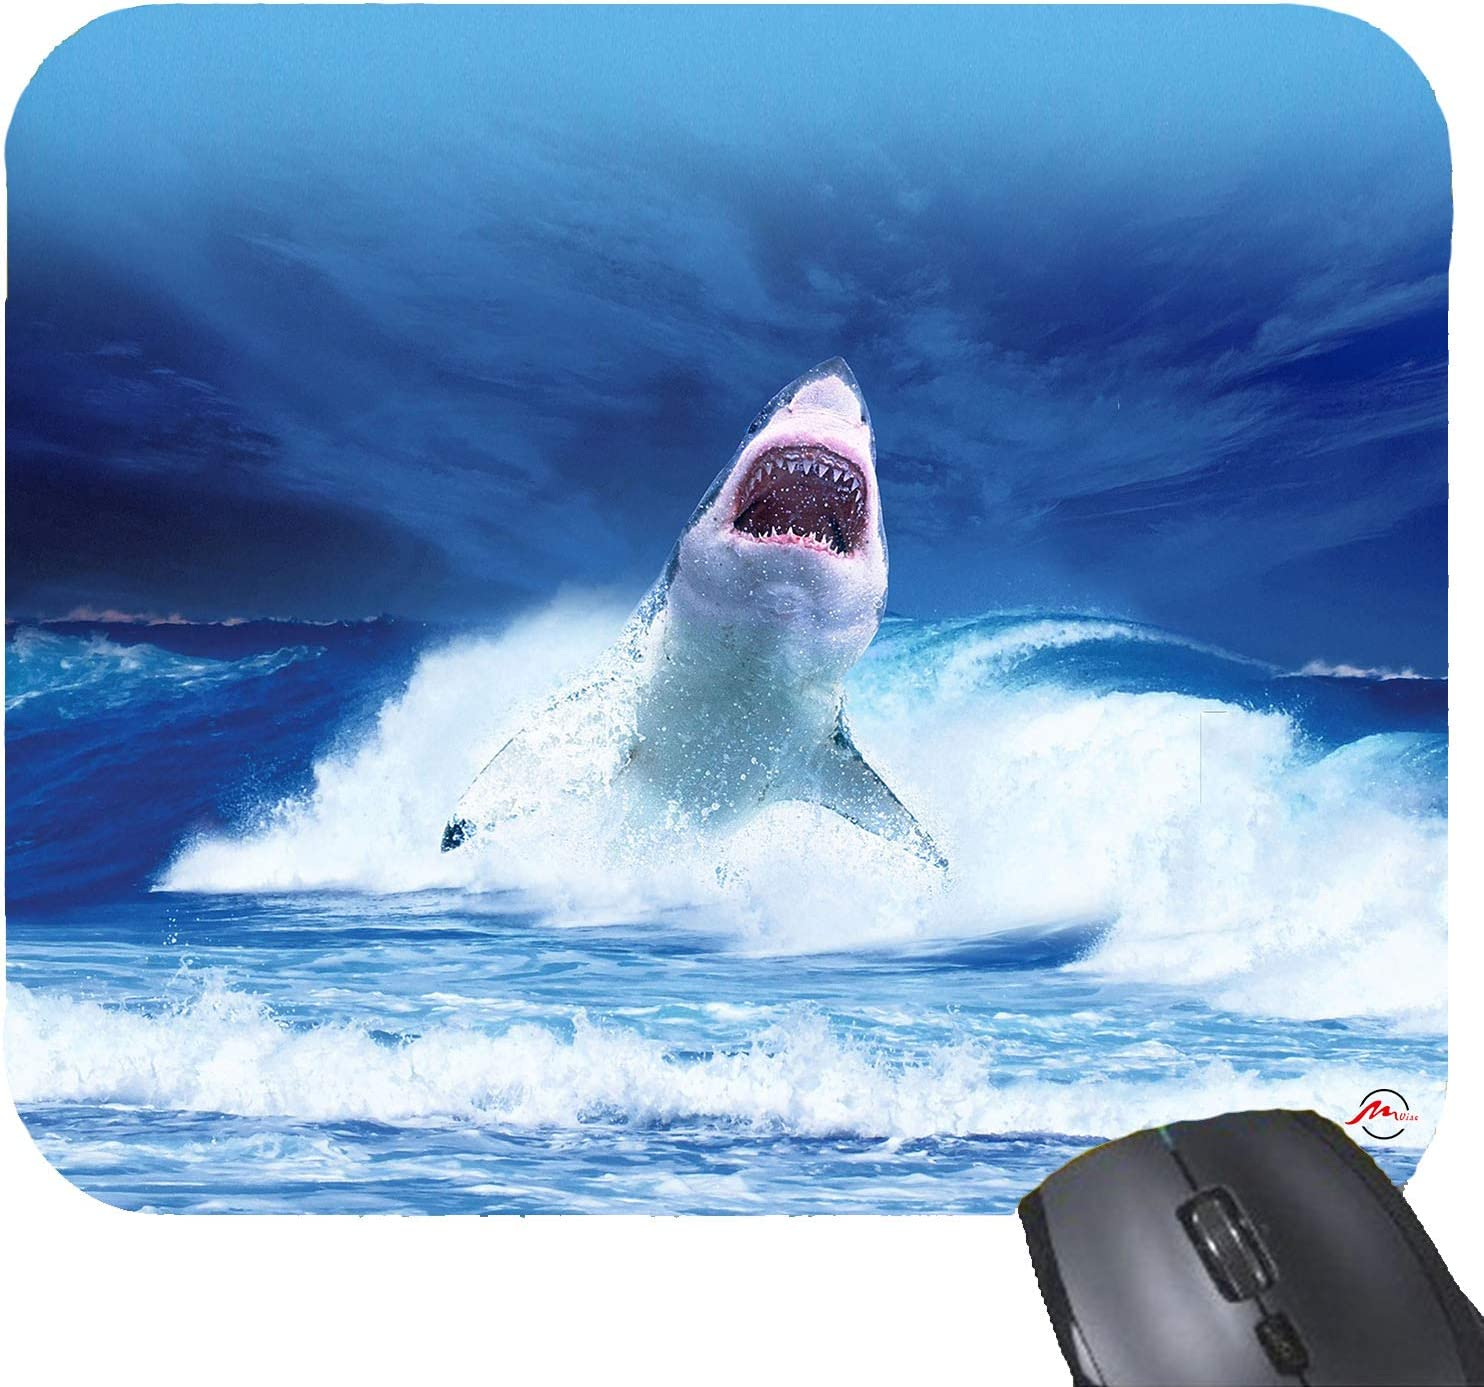 ZMvise Shark Fish Mouse Pad Rubber Gaming Mousepad 9x7.5 Inches